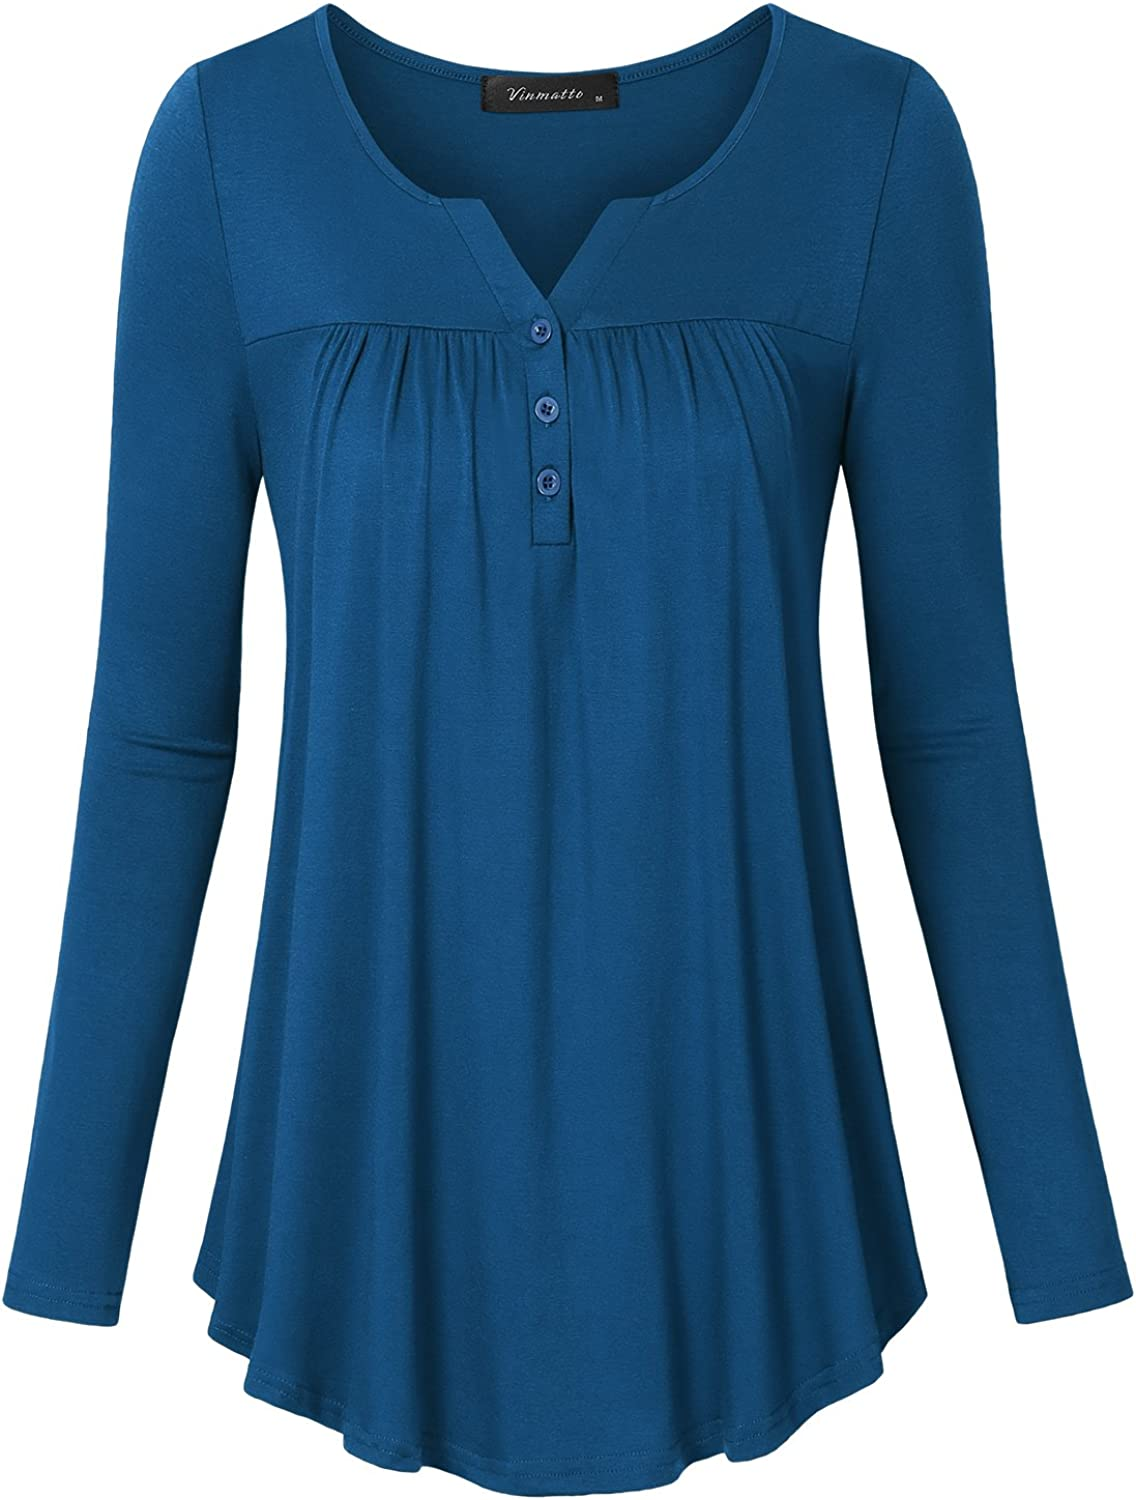 Vinmatto Women's Long Sleeve Henley V Neck Pleated Button Details Tunic Shirt Top